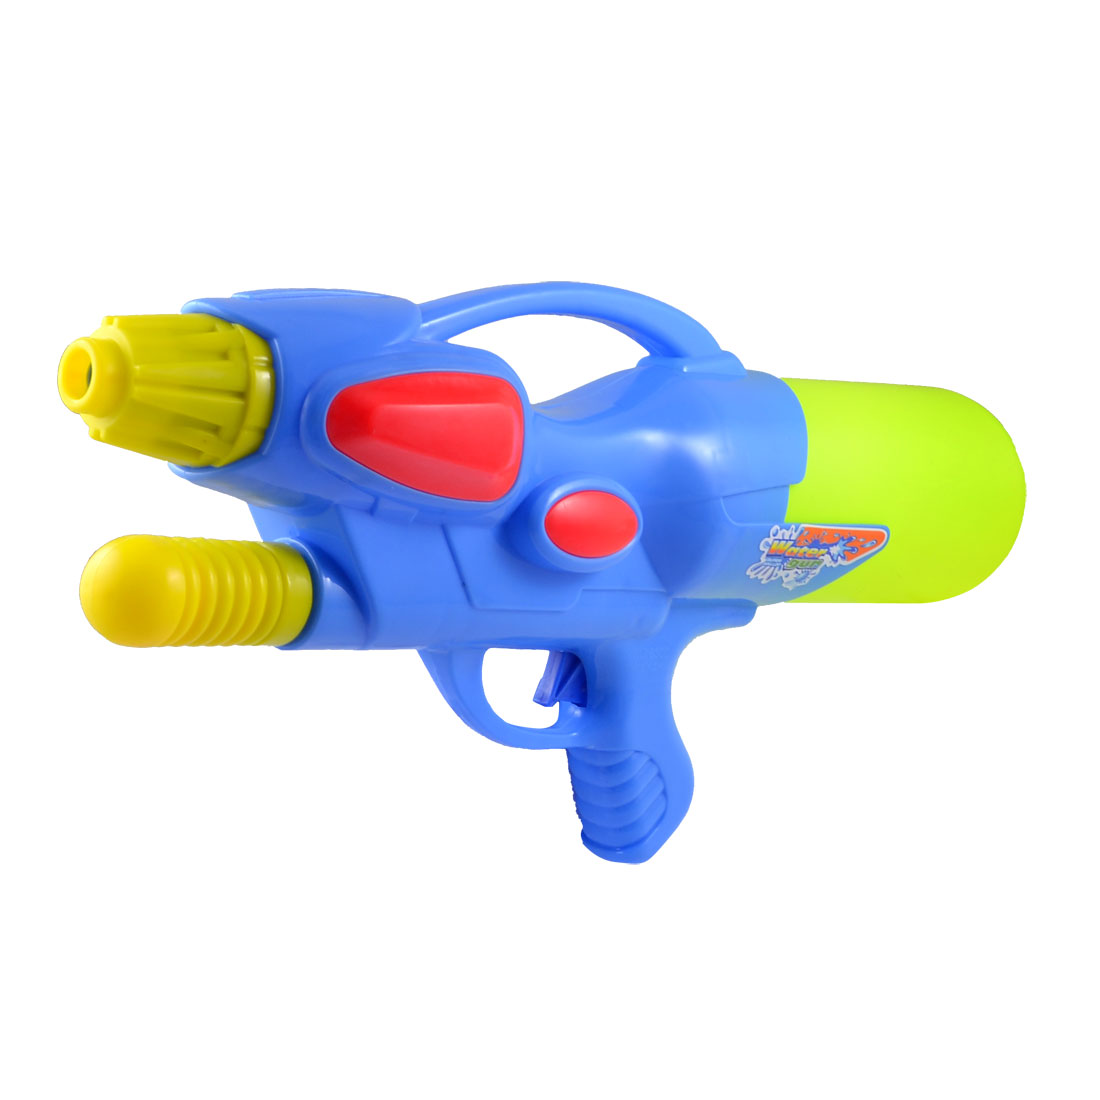 Yellowgreen Blue Plastic Hand Pump Air Pressure Water Gun Fight Toy for Child